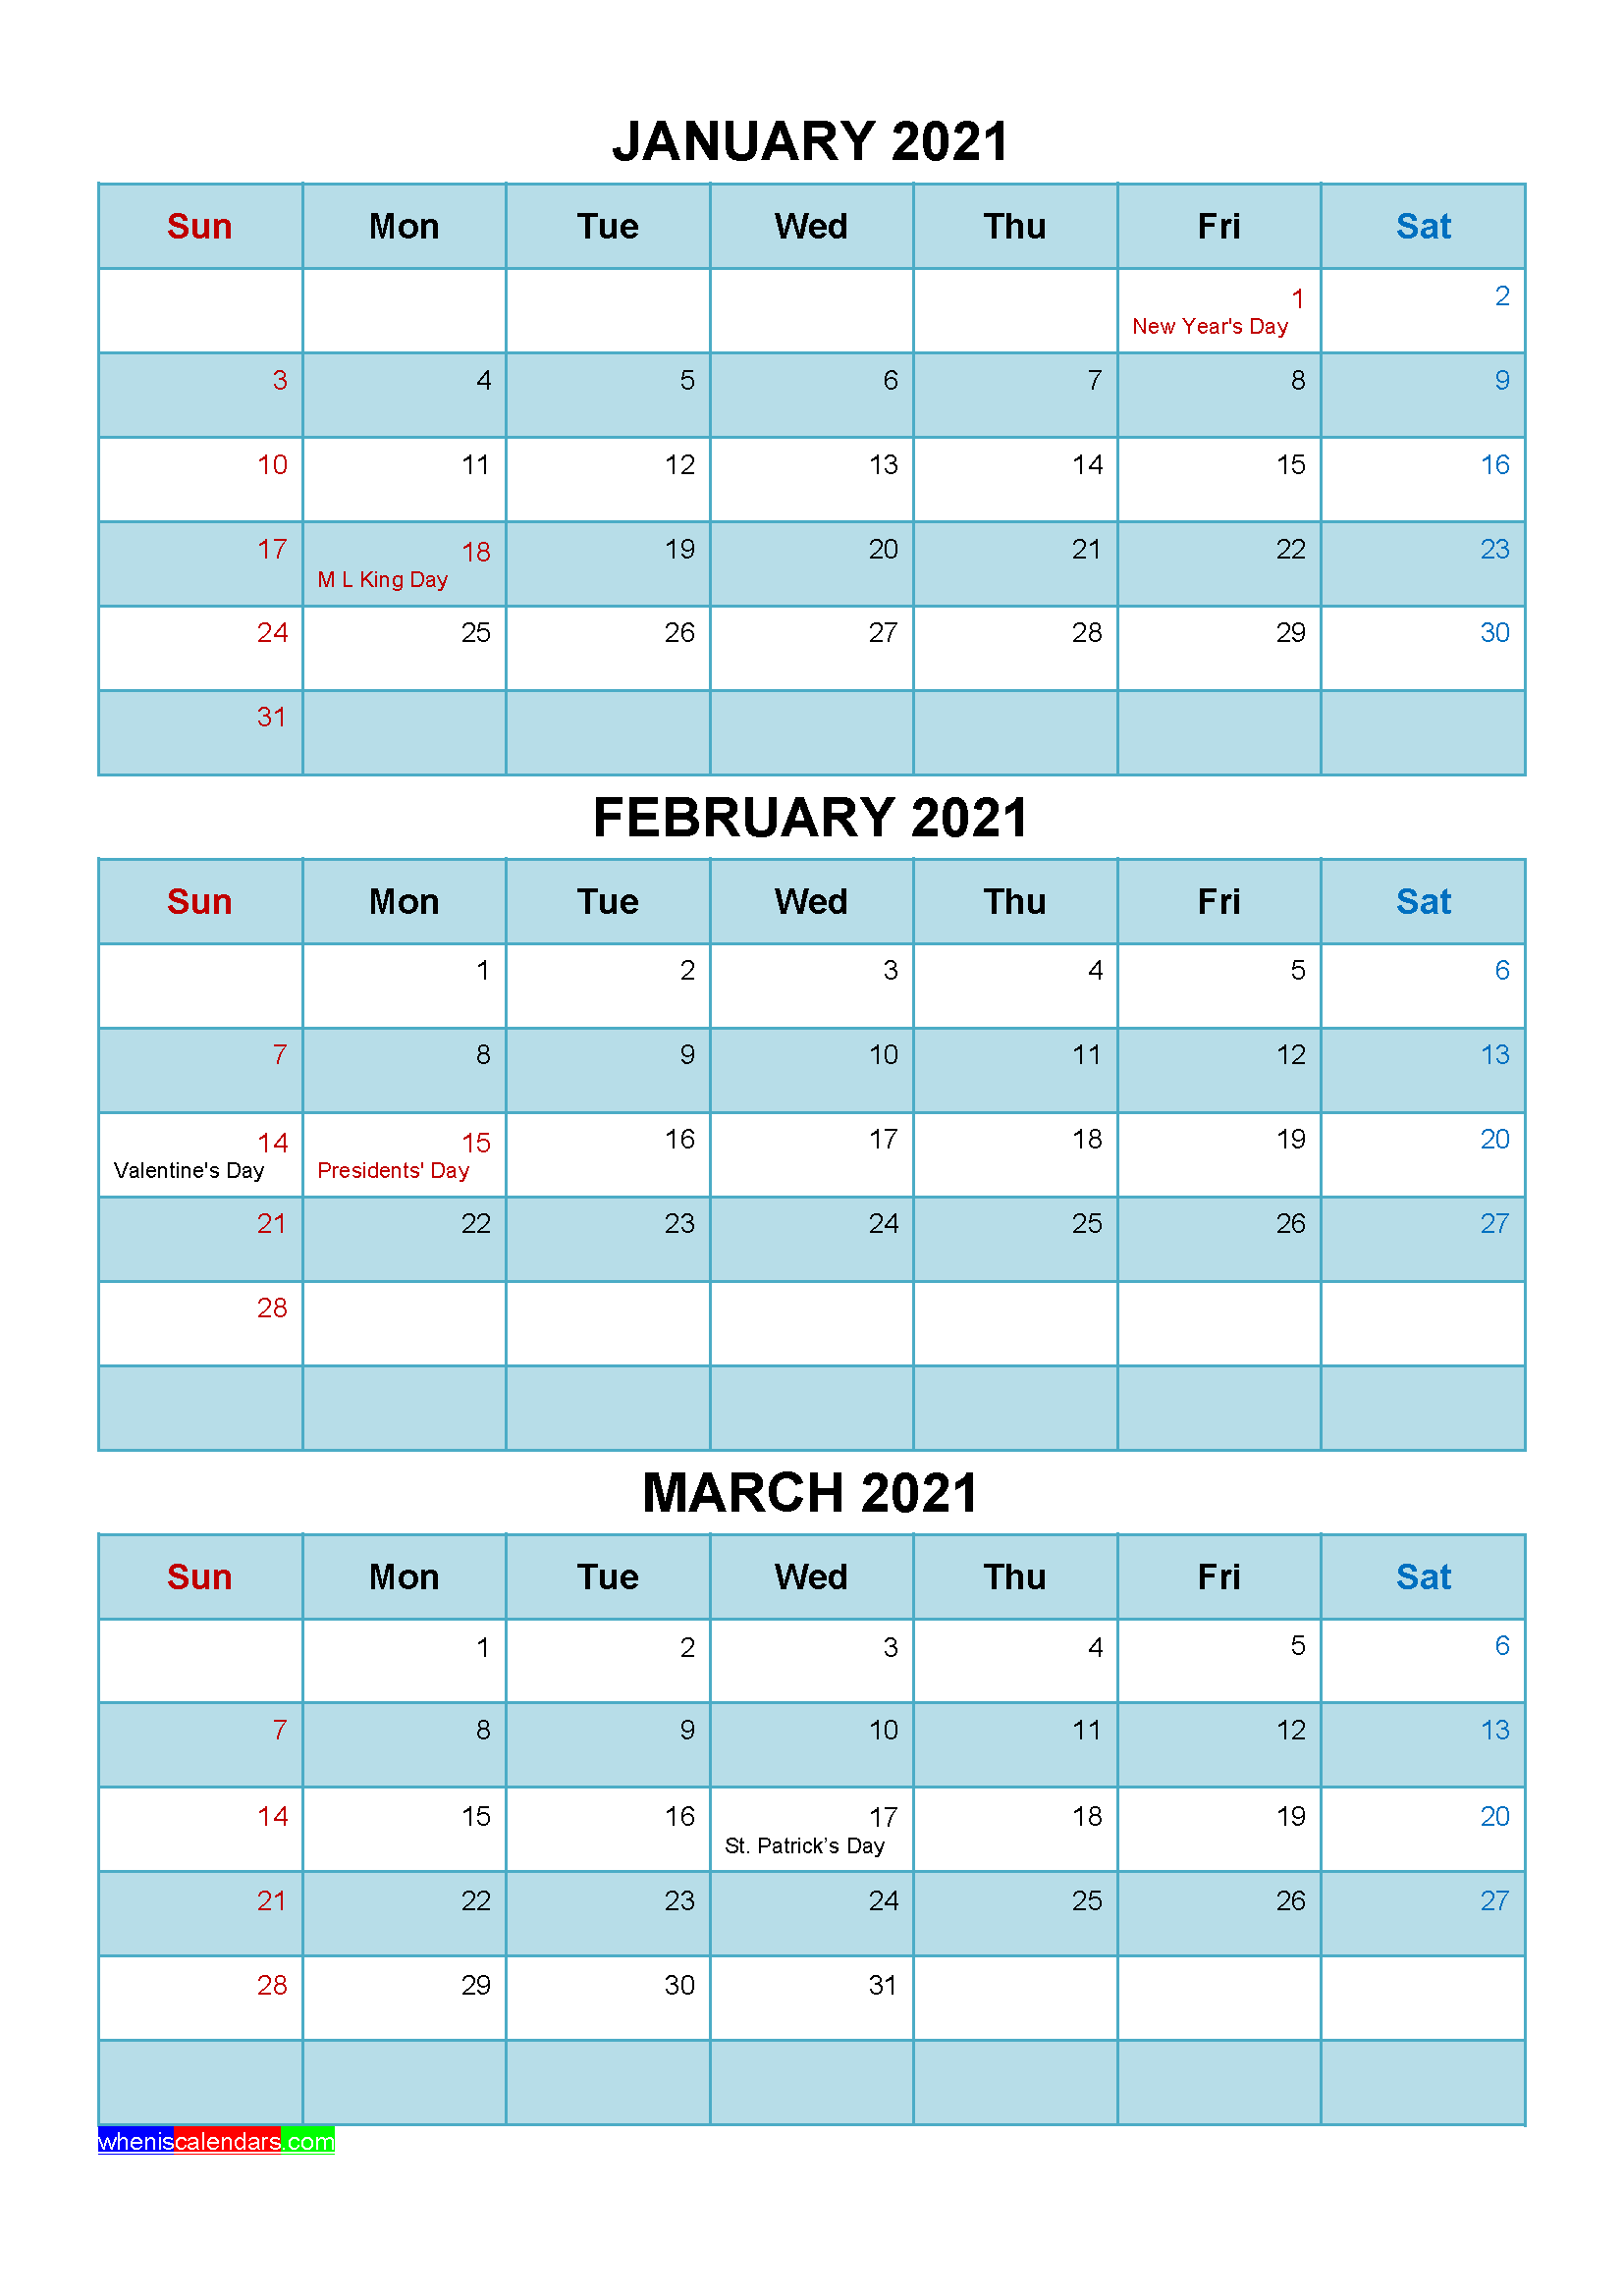 Free January February March 2021 Calendar with Holidays